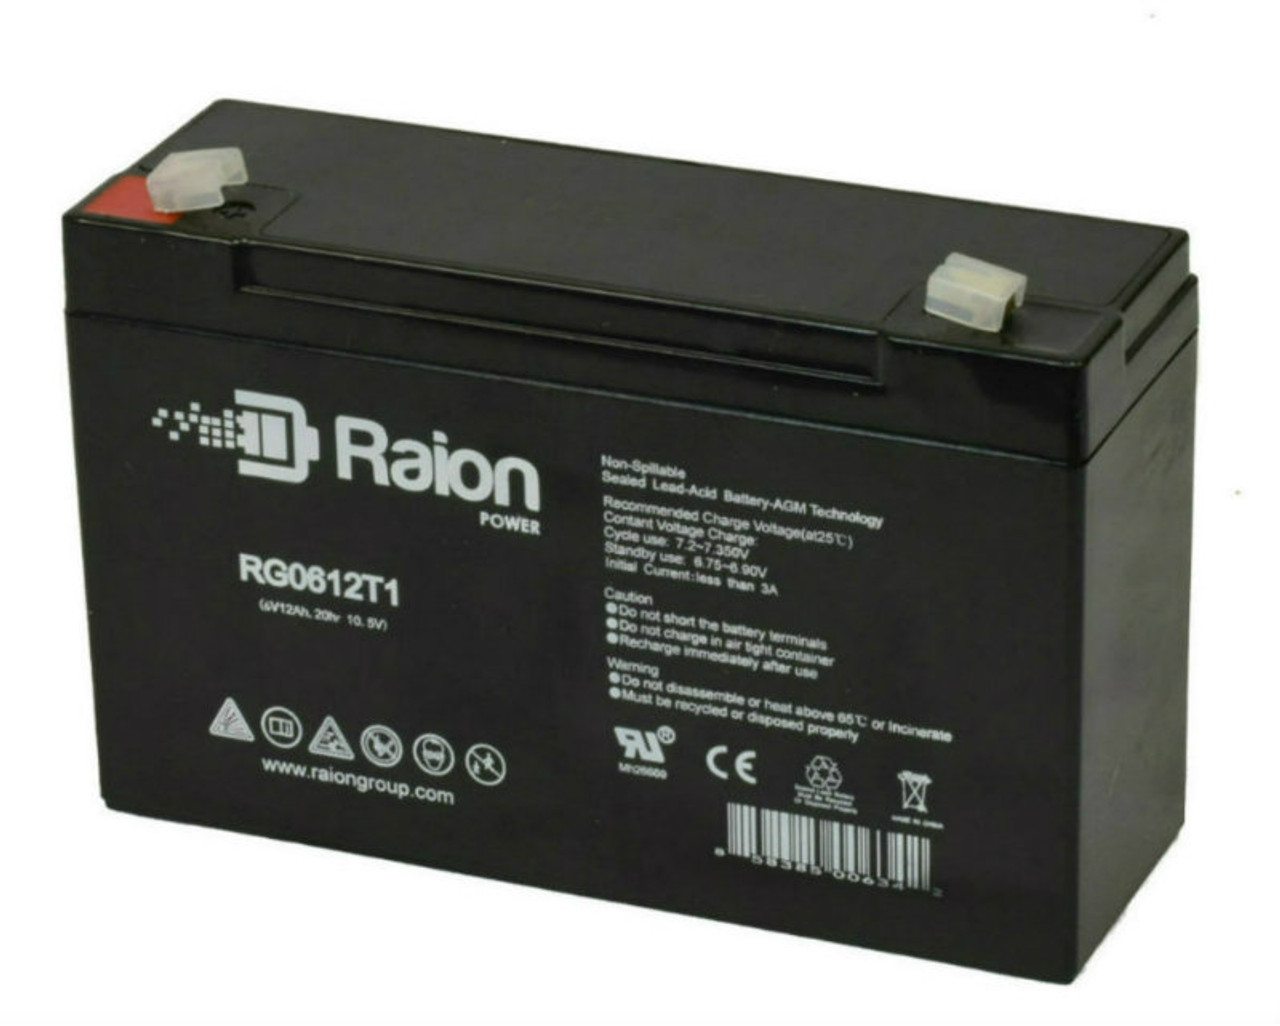 Raion Power RG06120T1 Replacement Battery Pack for Light Alarms P12G1 emergency light